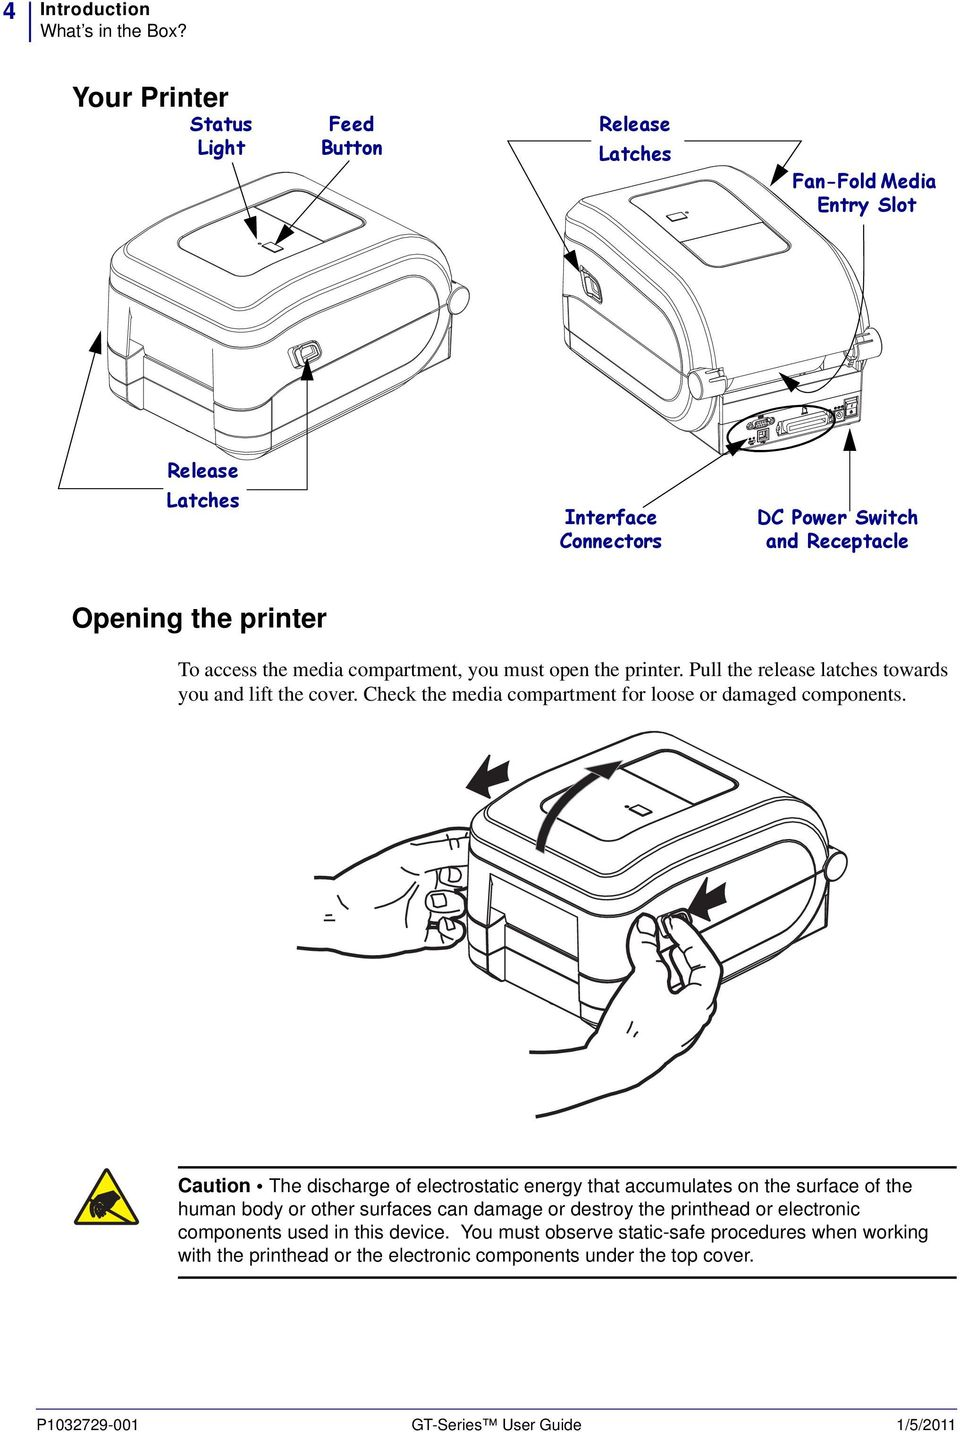 media compartment, you must open the printer. Pull the release latches towards you and lift the cover. Check the media compartment for loose or damaged components.